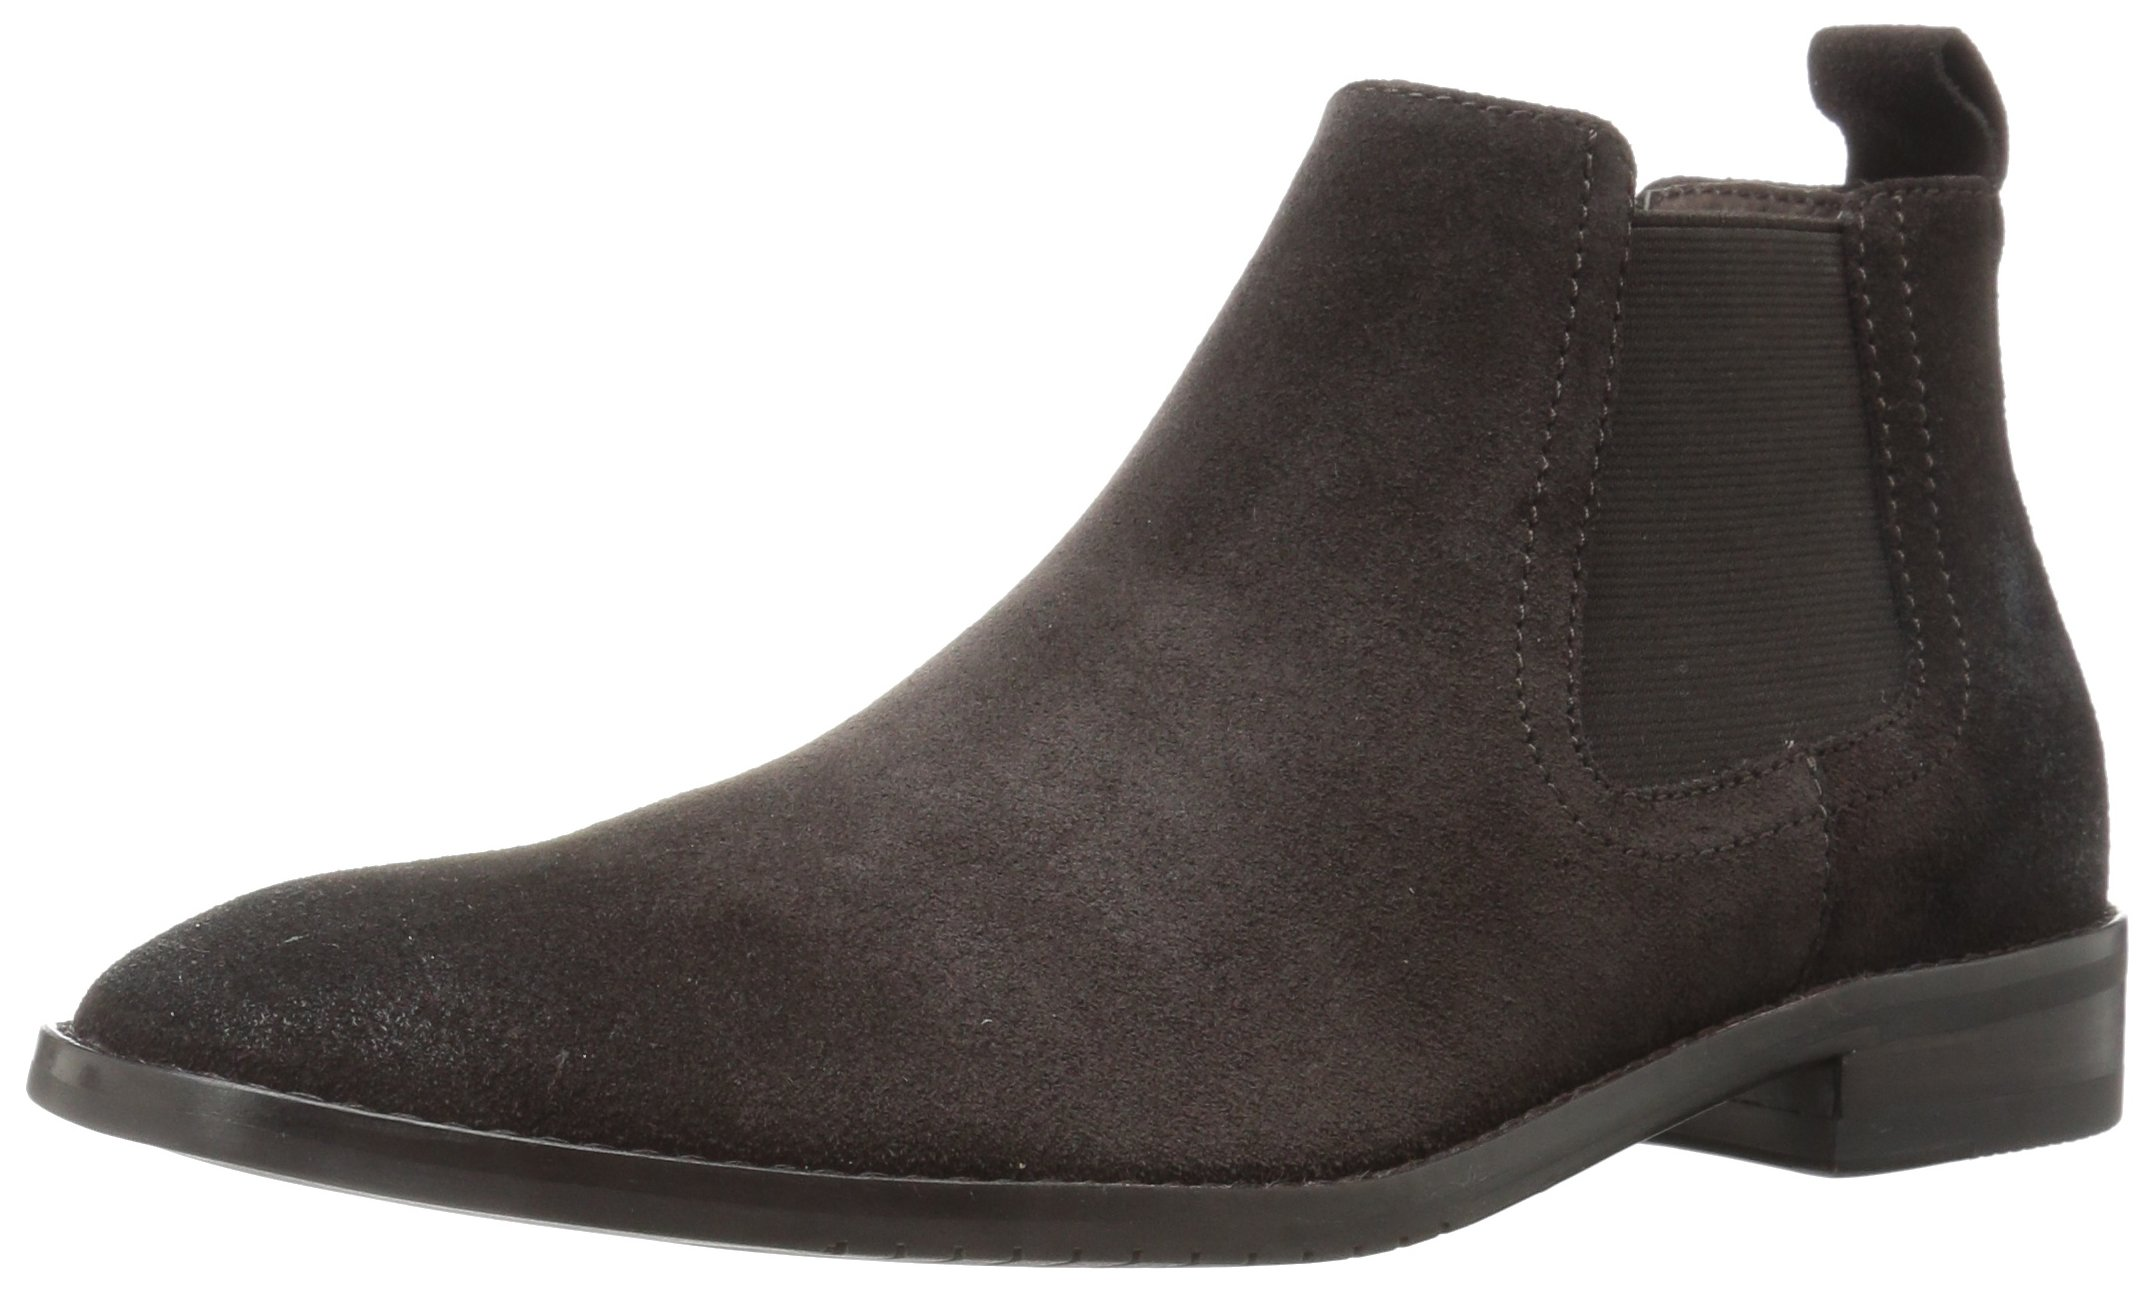 206 Collective Men's Capitol Ankle Chelsea Boot, Chocolate Brown Burnish, 7 D US